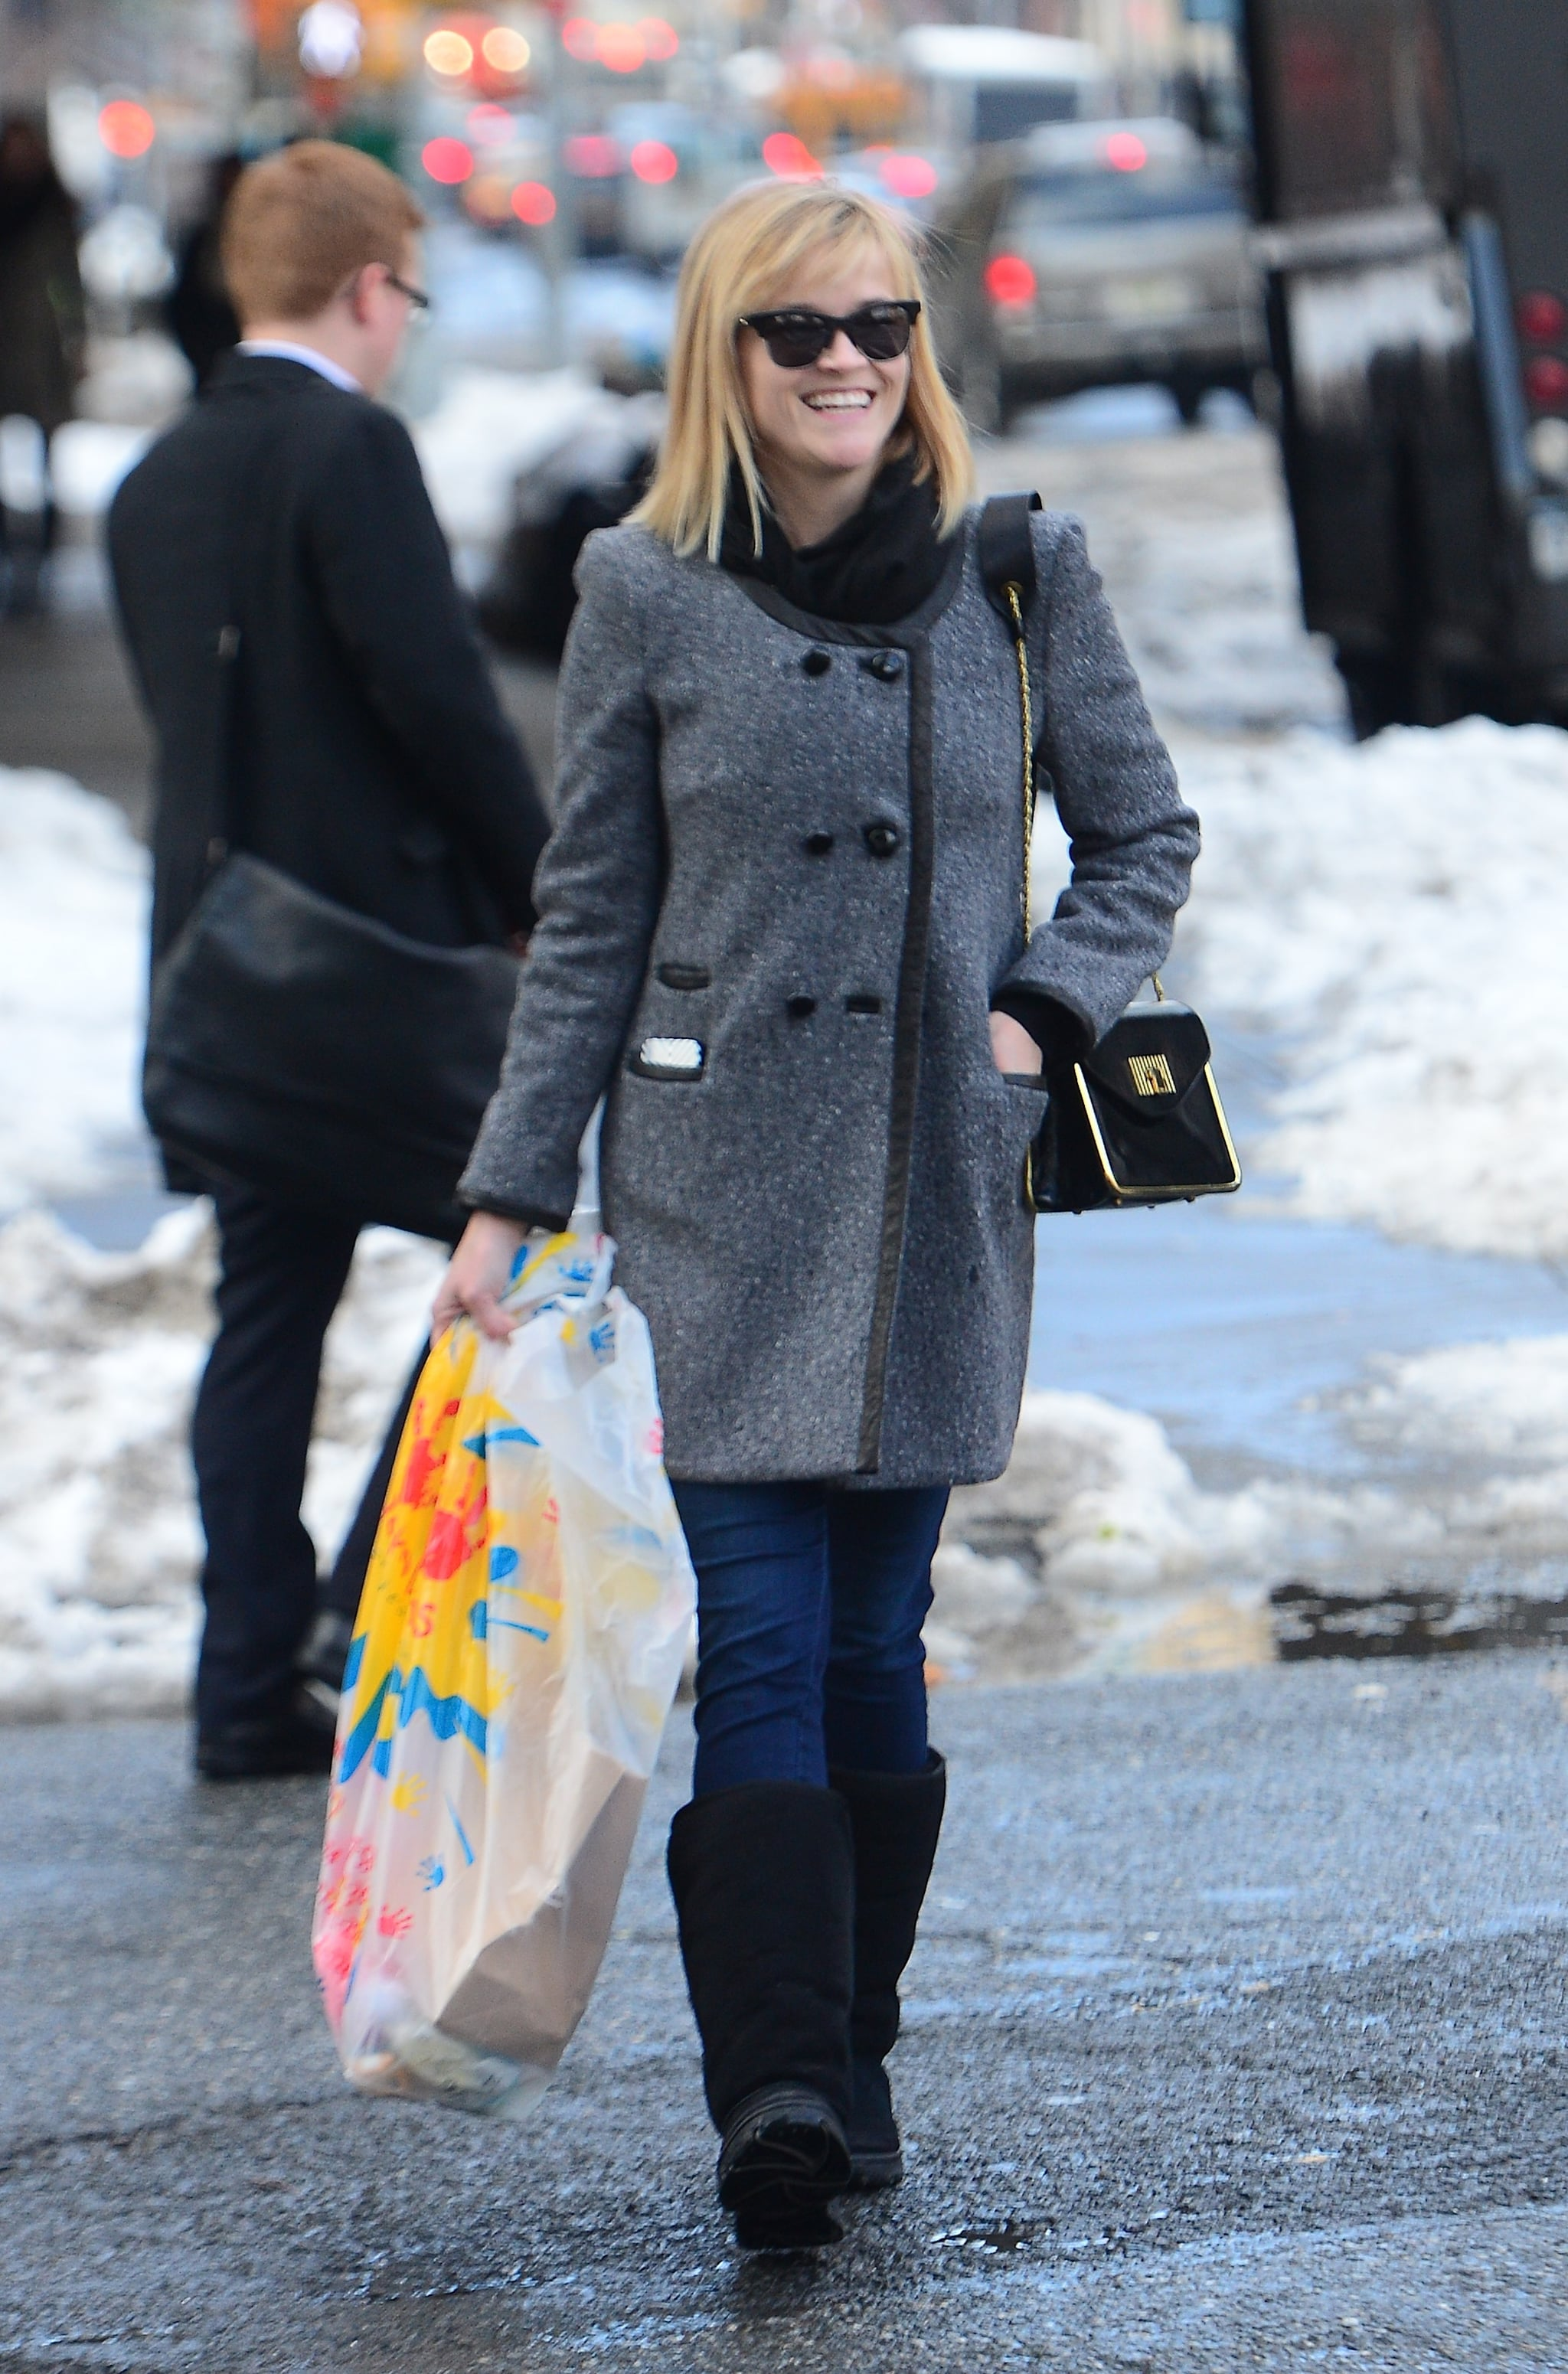 While visiting NYC, Reese bundled up in a tweed coat and black shearling boots.